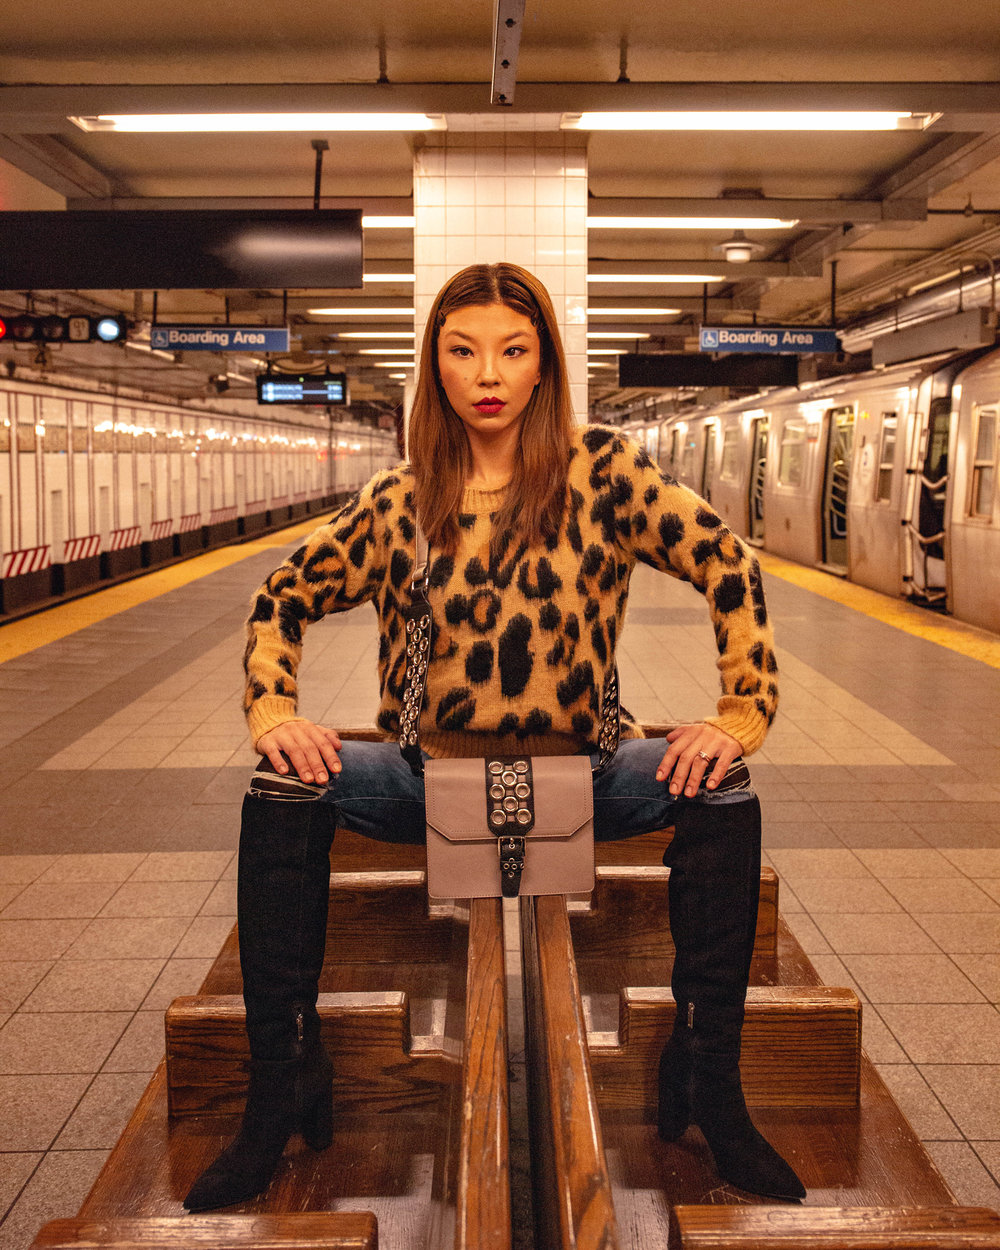 NYC subway fashion